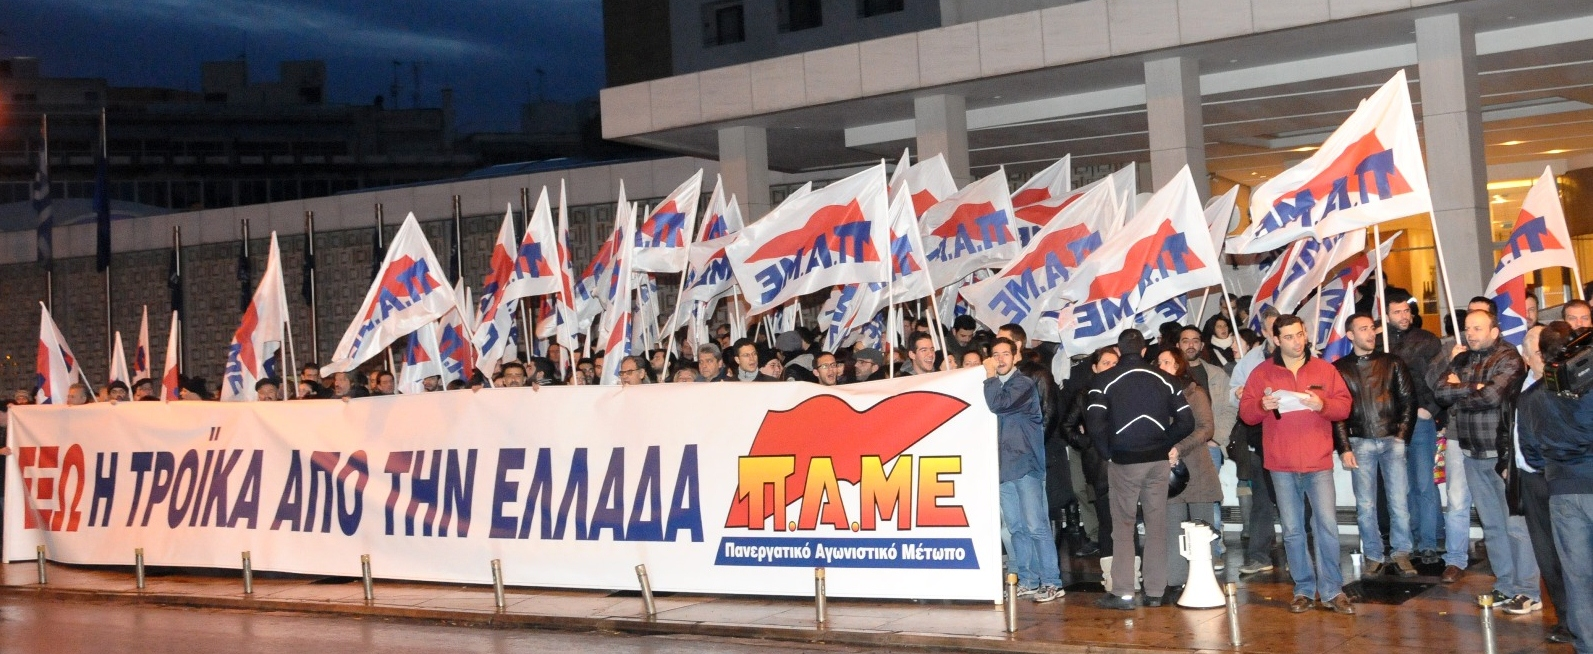 Down with the Government, Troika Out! All Workers Militant Front (PAME) demonstration outside IMF delegation's hotel in Athens